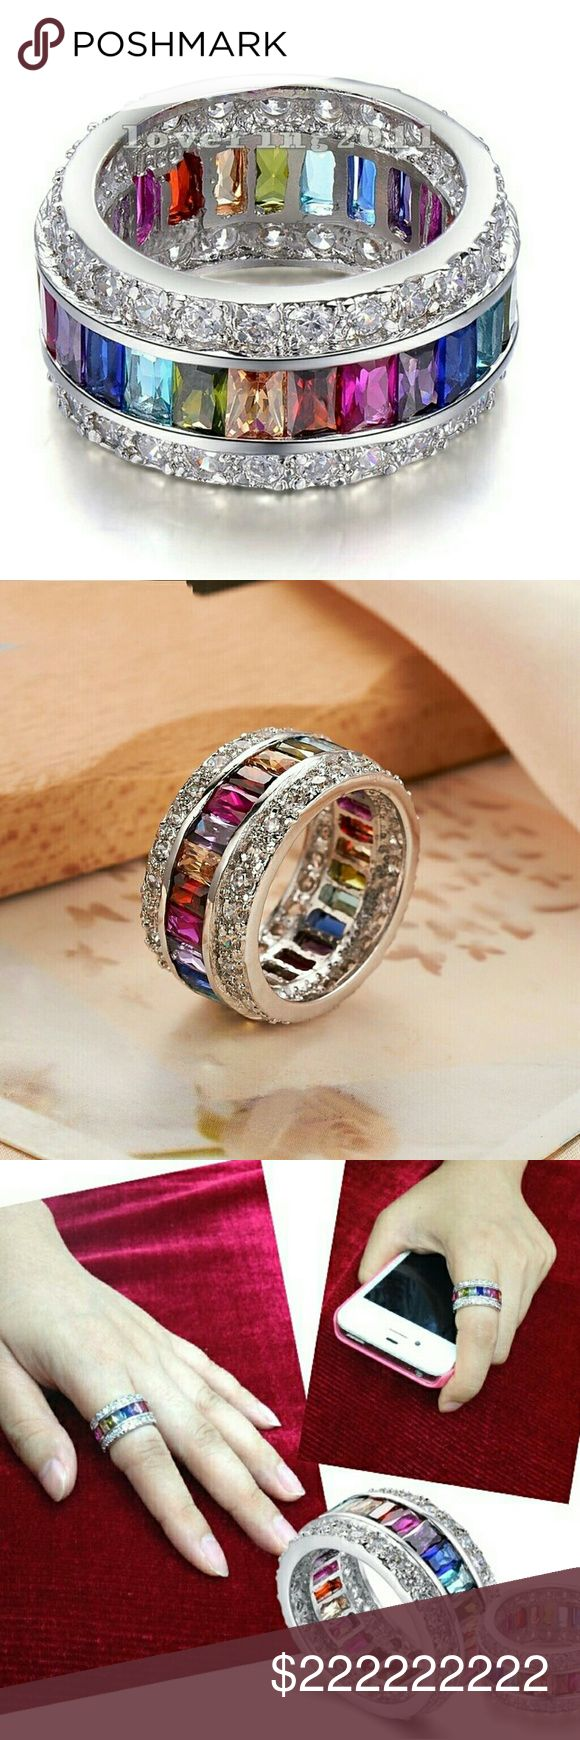 $51 Rainbow eternity wedding ring 9 MM BAND Pre order sizes 5-10 no half sizes. Will arrive 2 to 3 weeks. Just comment below on size you would like Price is firm High quality stones and very durable secure setting Channel set semi precious gemstones Alloy base bonded to sterling silver platinum plated Comes with ring box Sherri Souza Boutique & Jewelry Jewelry Rings